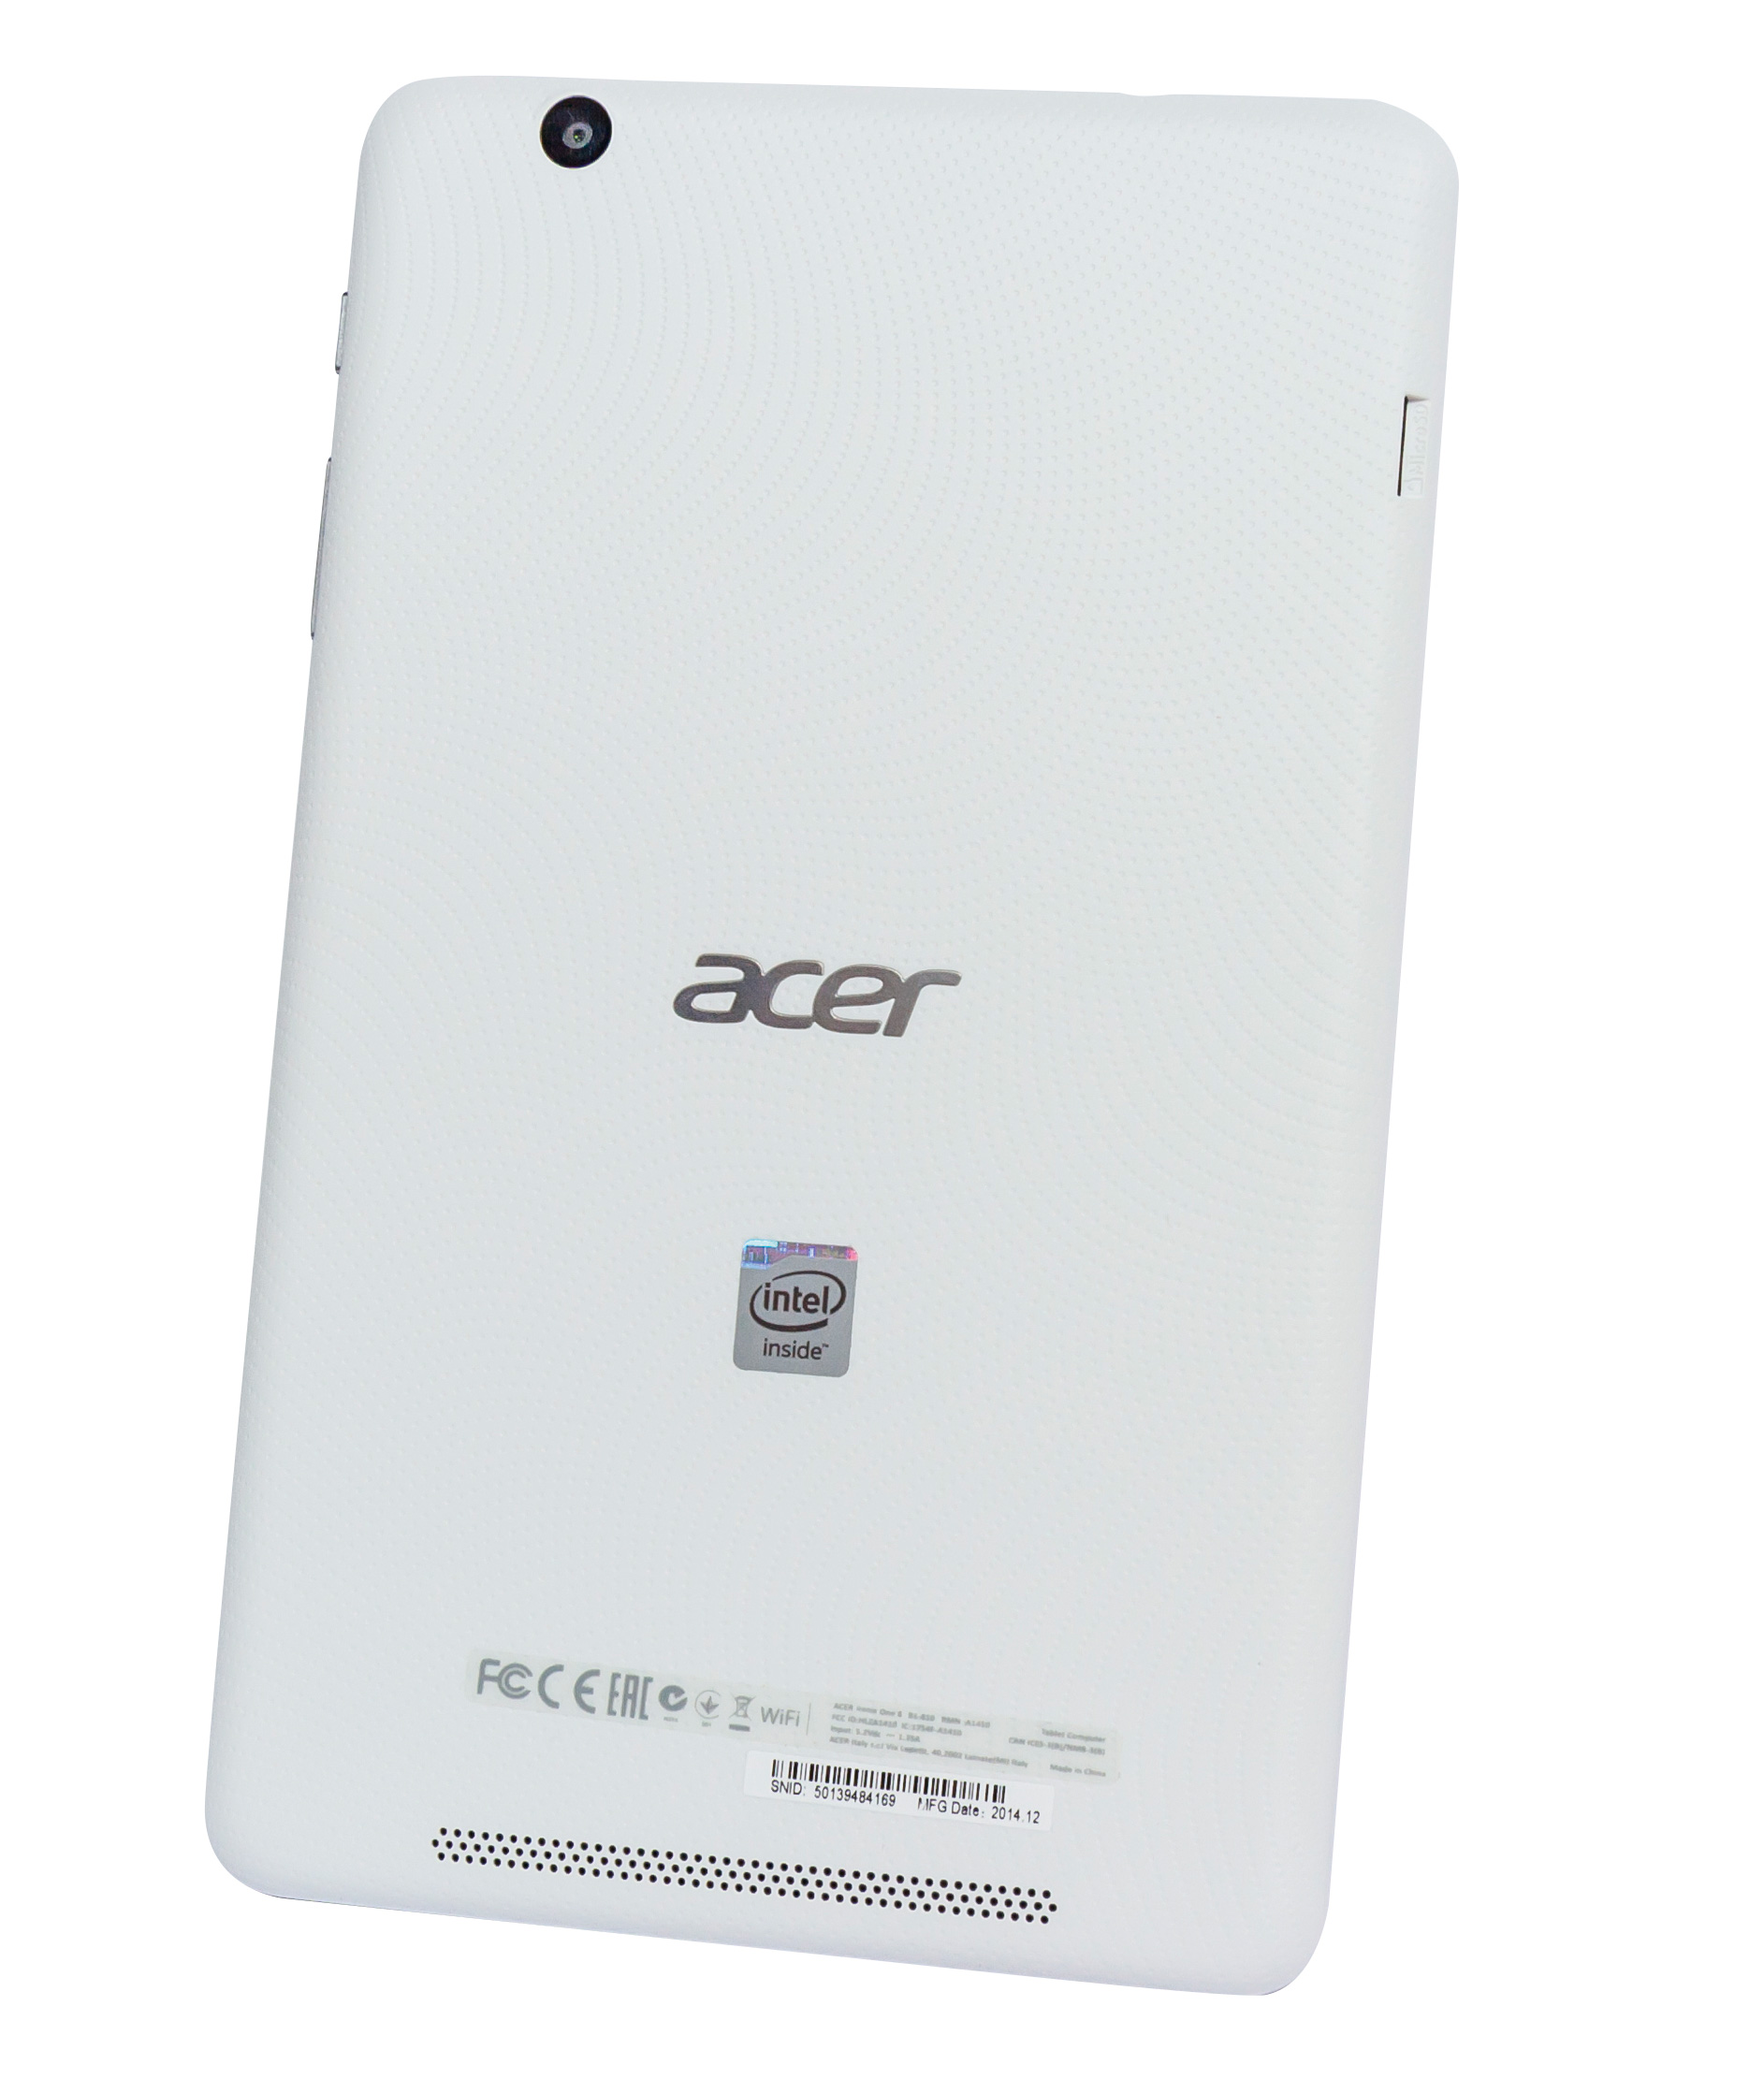 Acer Iconia One 8 B1 810 171W 5